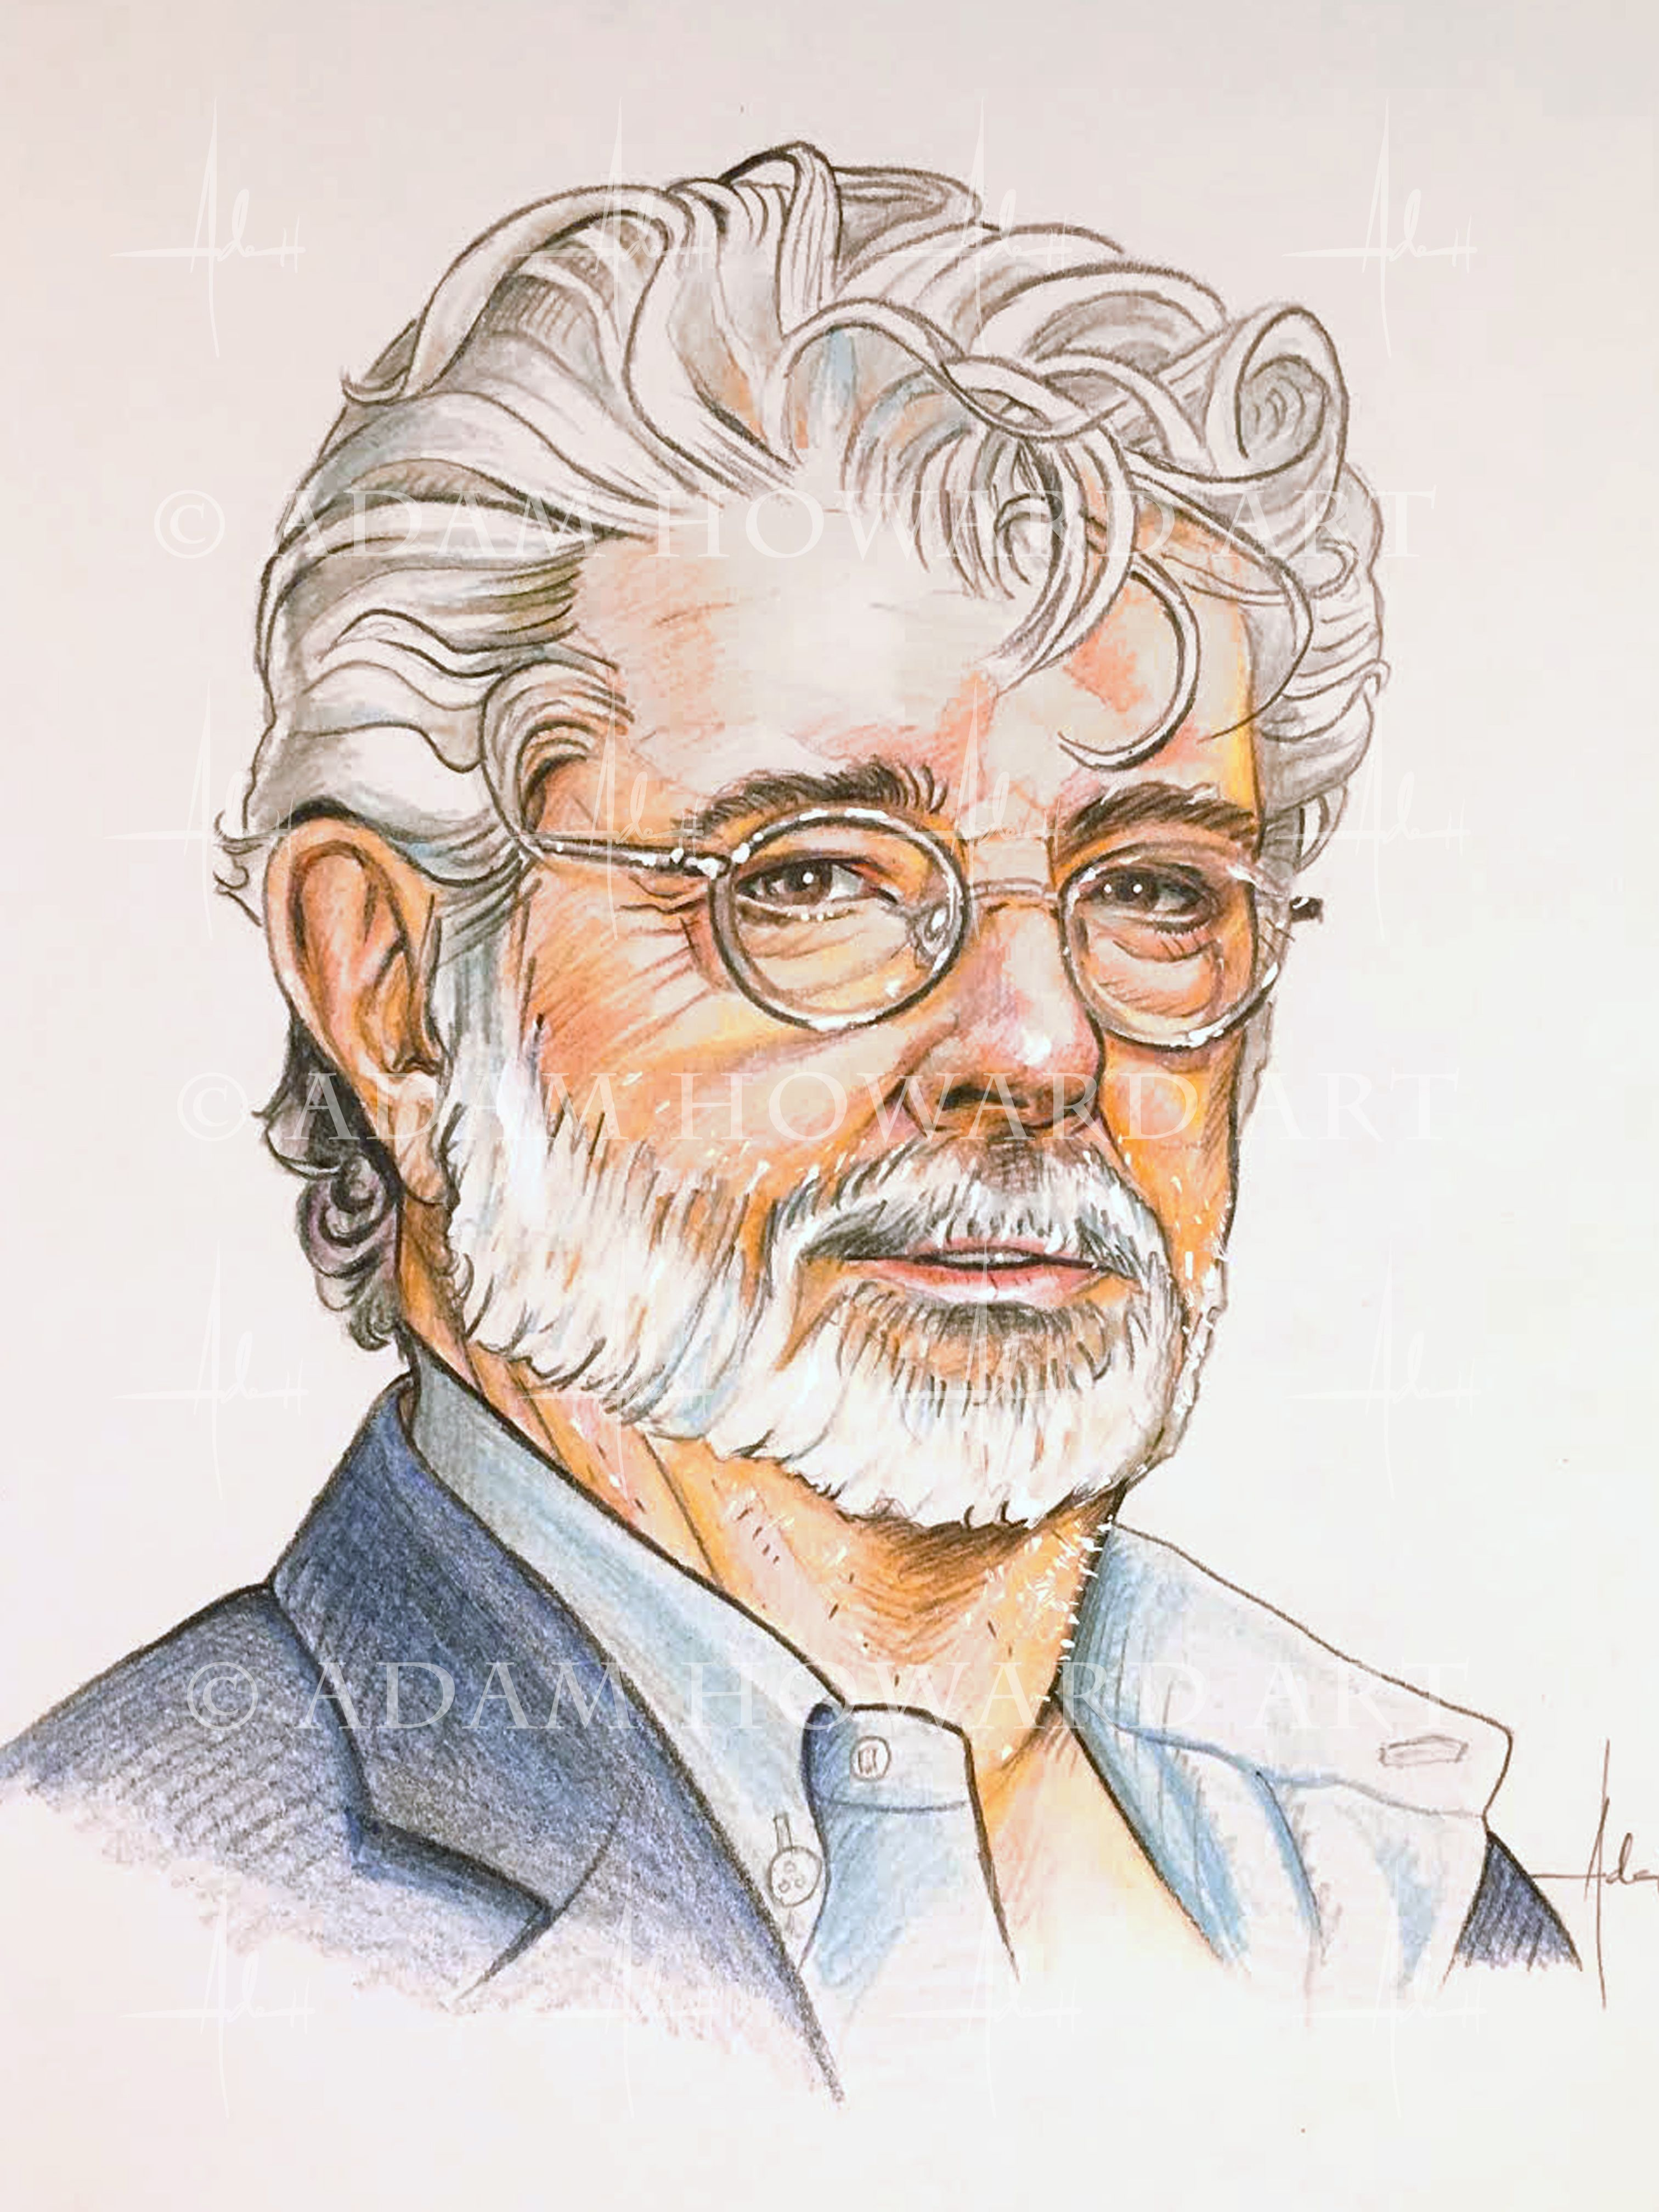 George Lucas  Illustration by and copyright of Adam Howard 2017